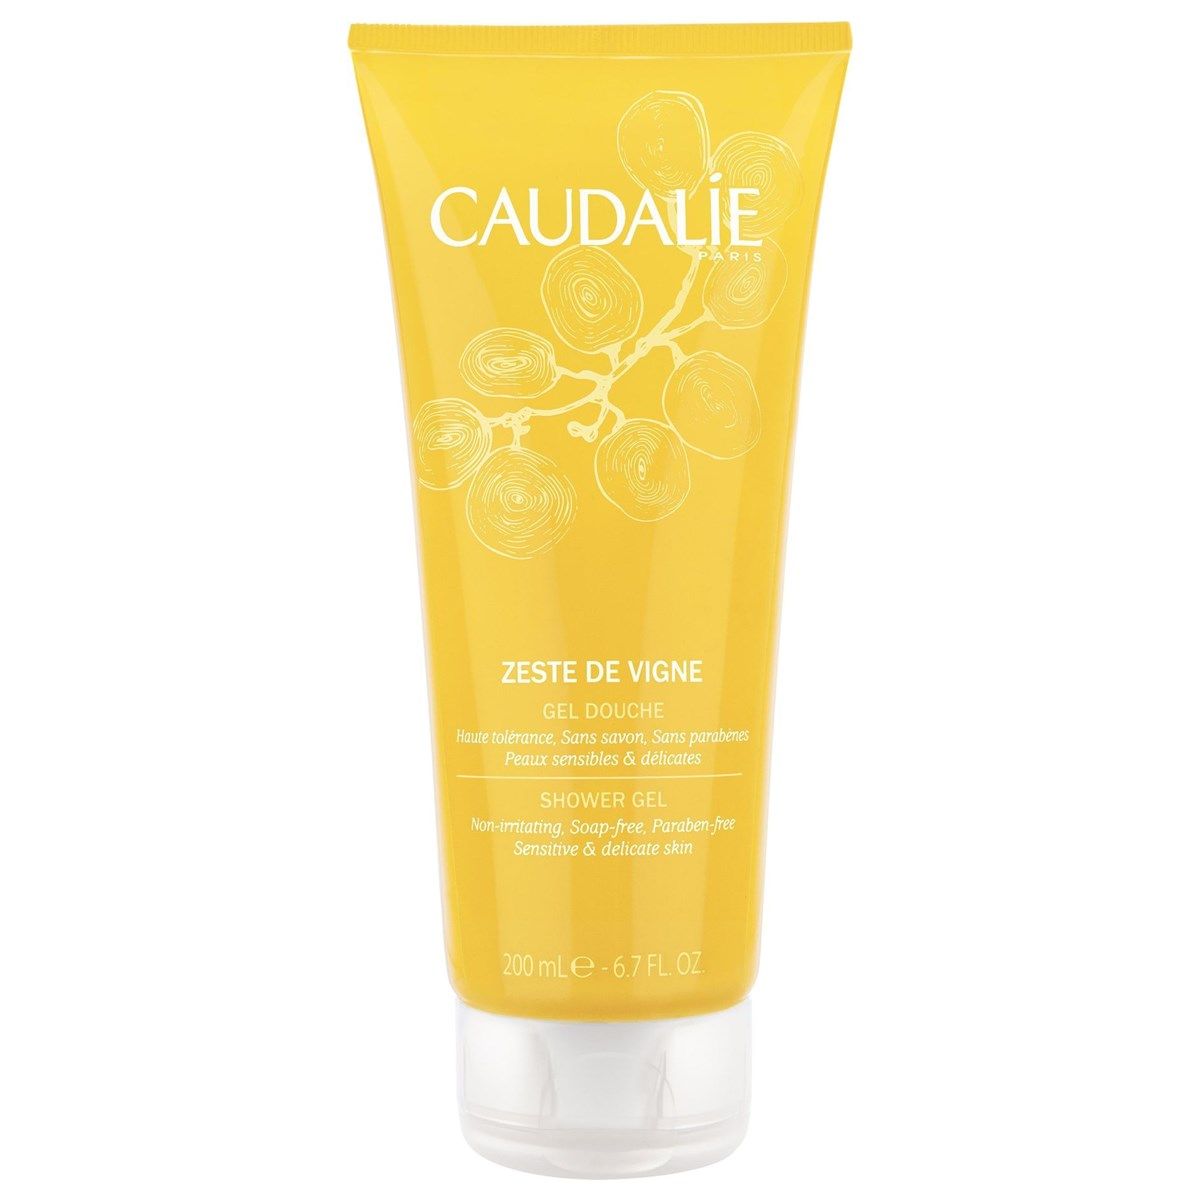 Caudalie Zeste De Vigne Shower Gel